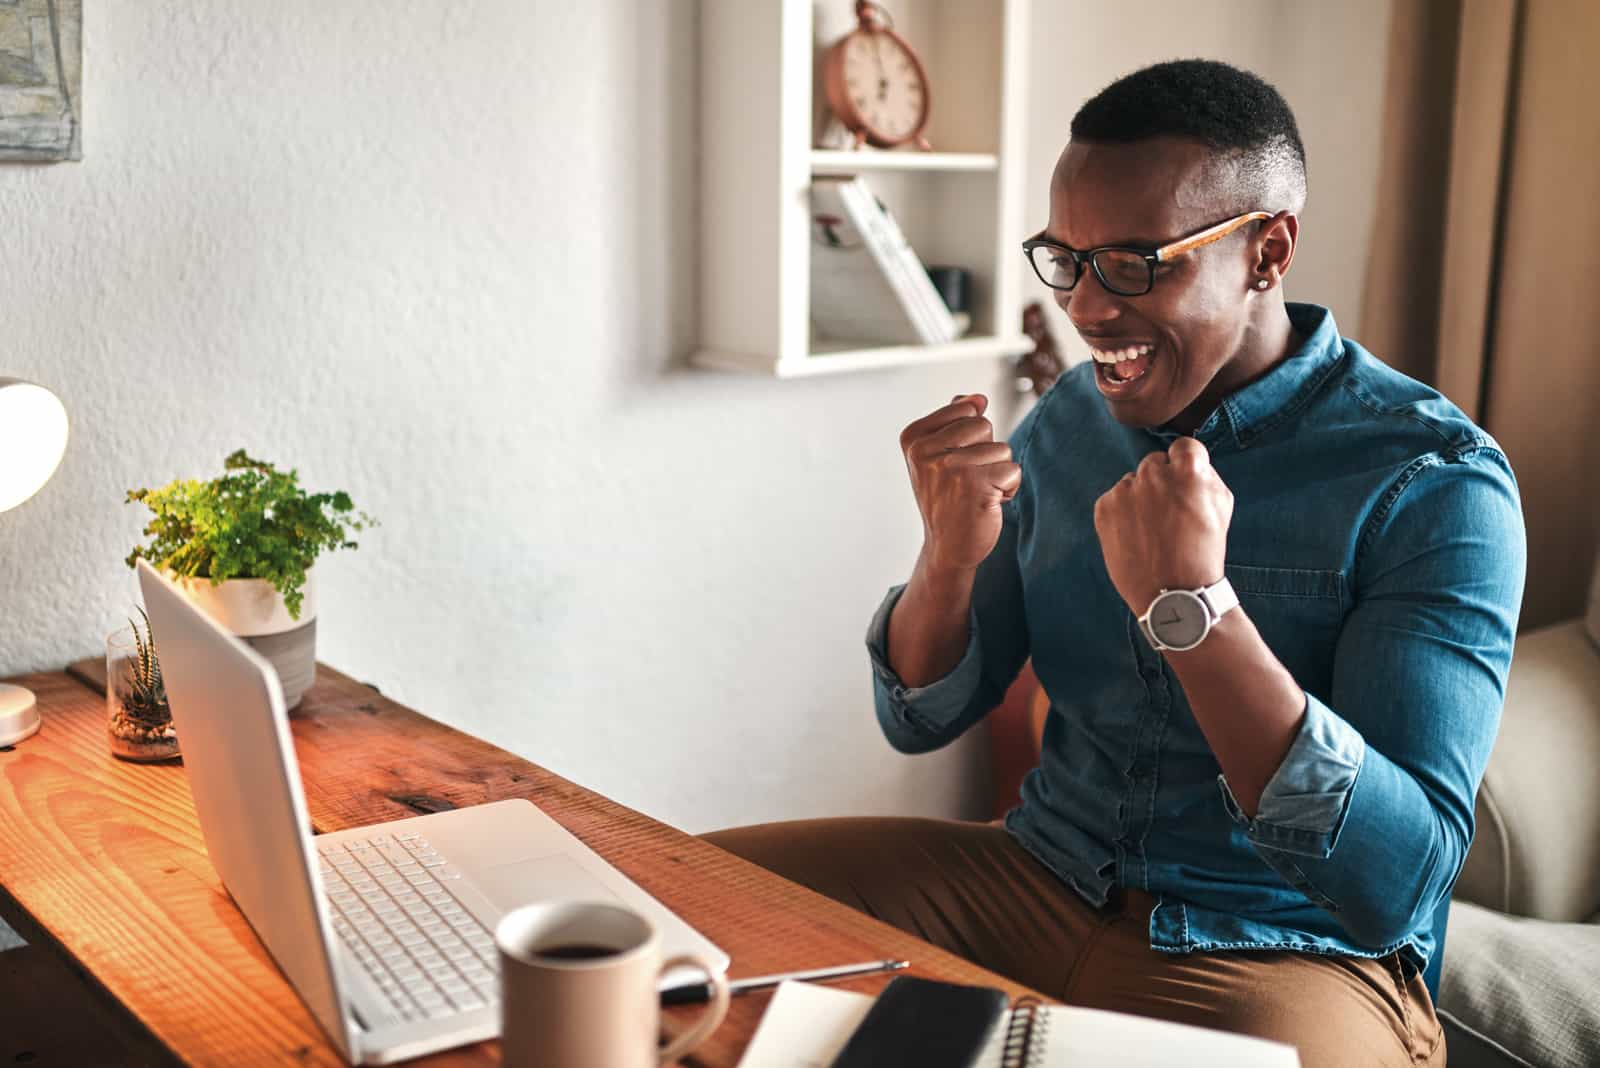 Cropped shot of a handsome young businessman sitting alone in his home office and feeling excited while using his laptop